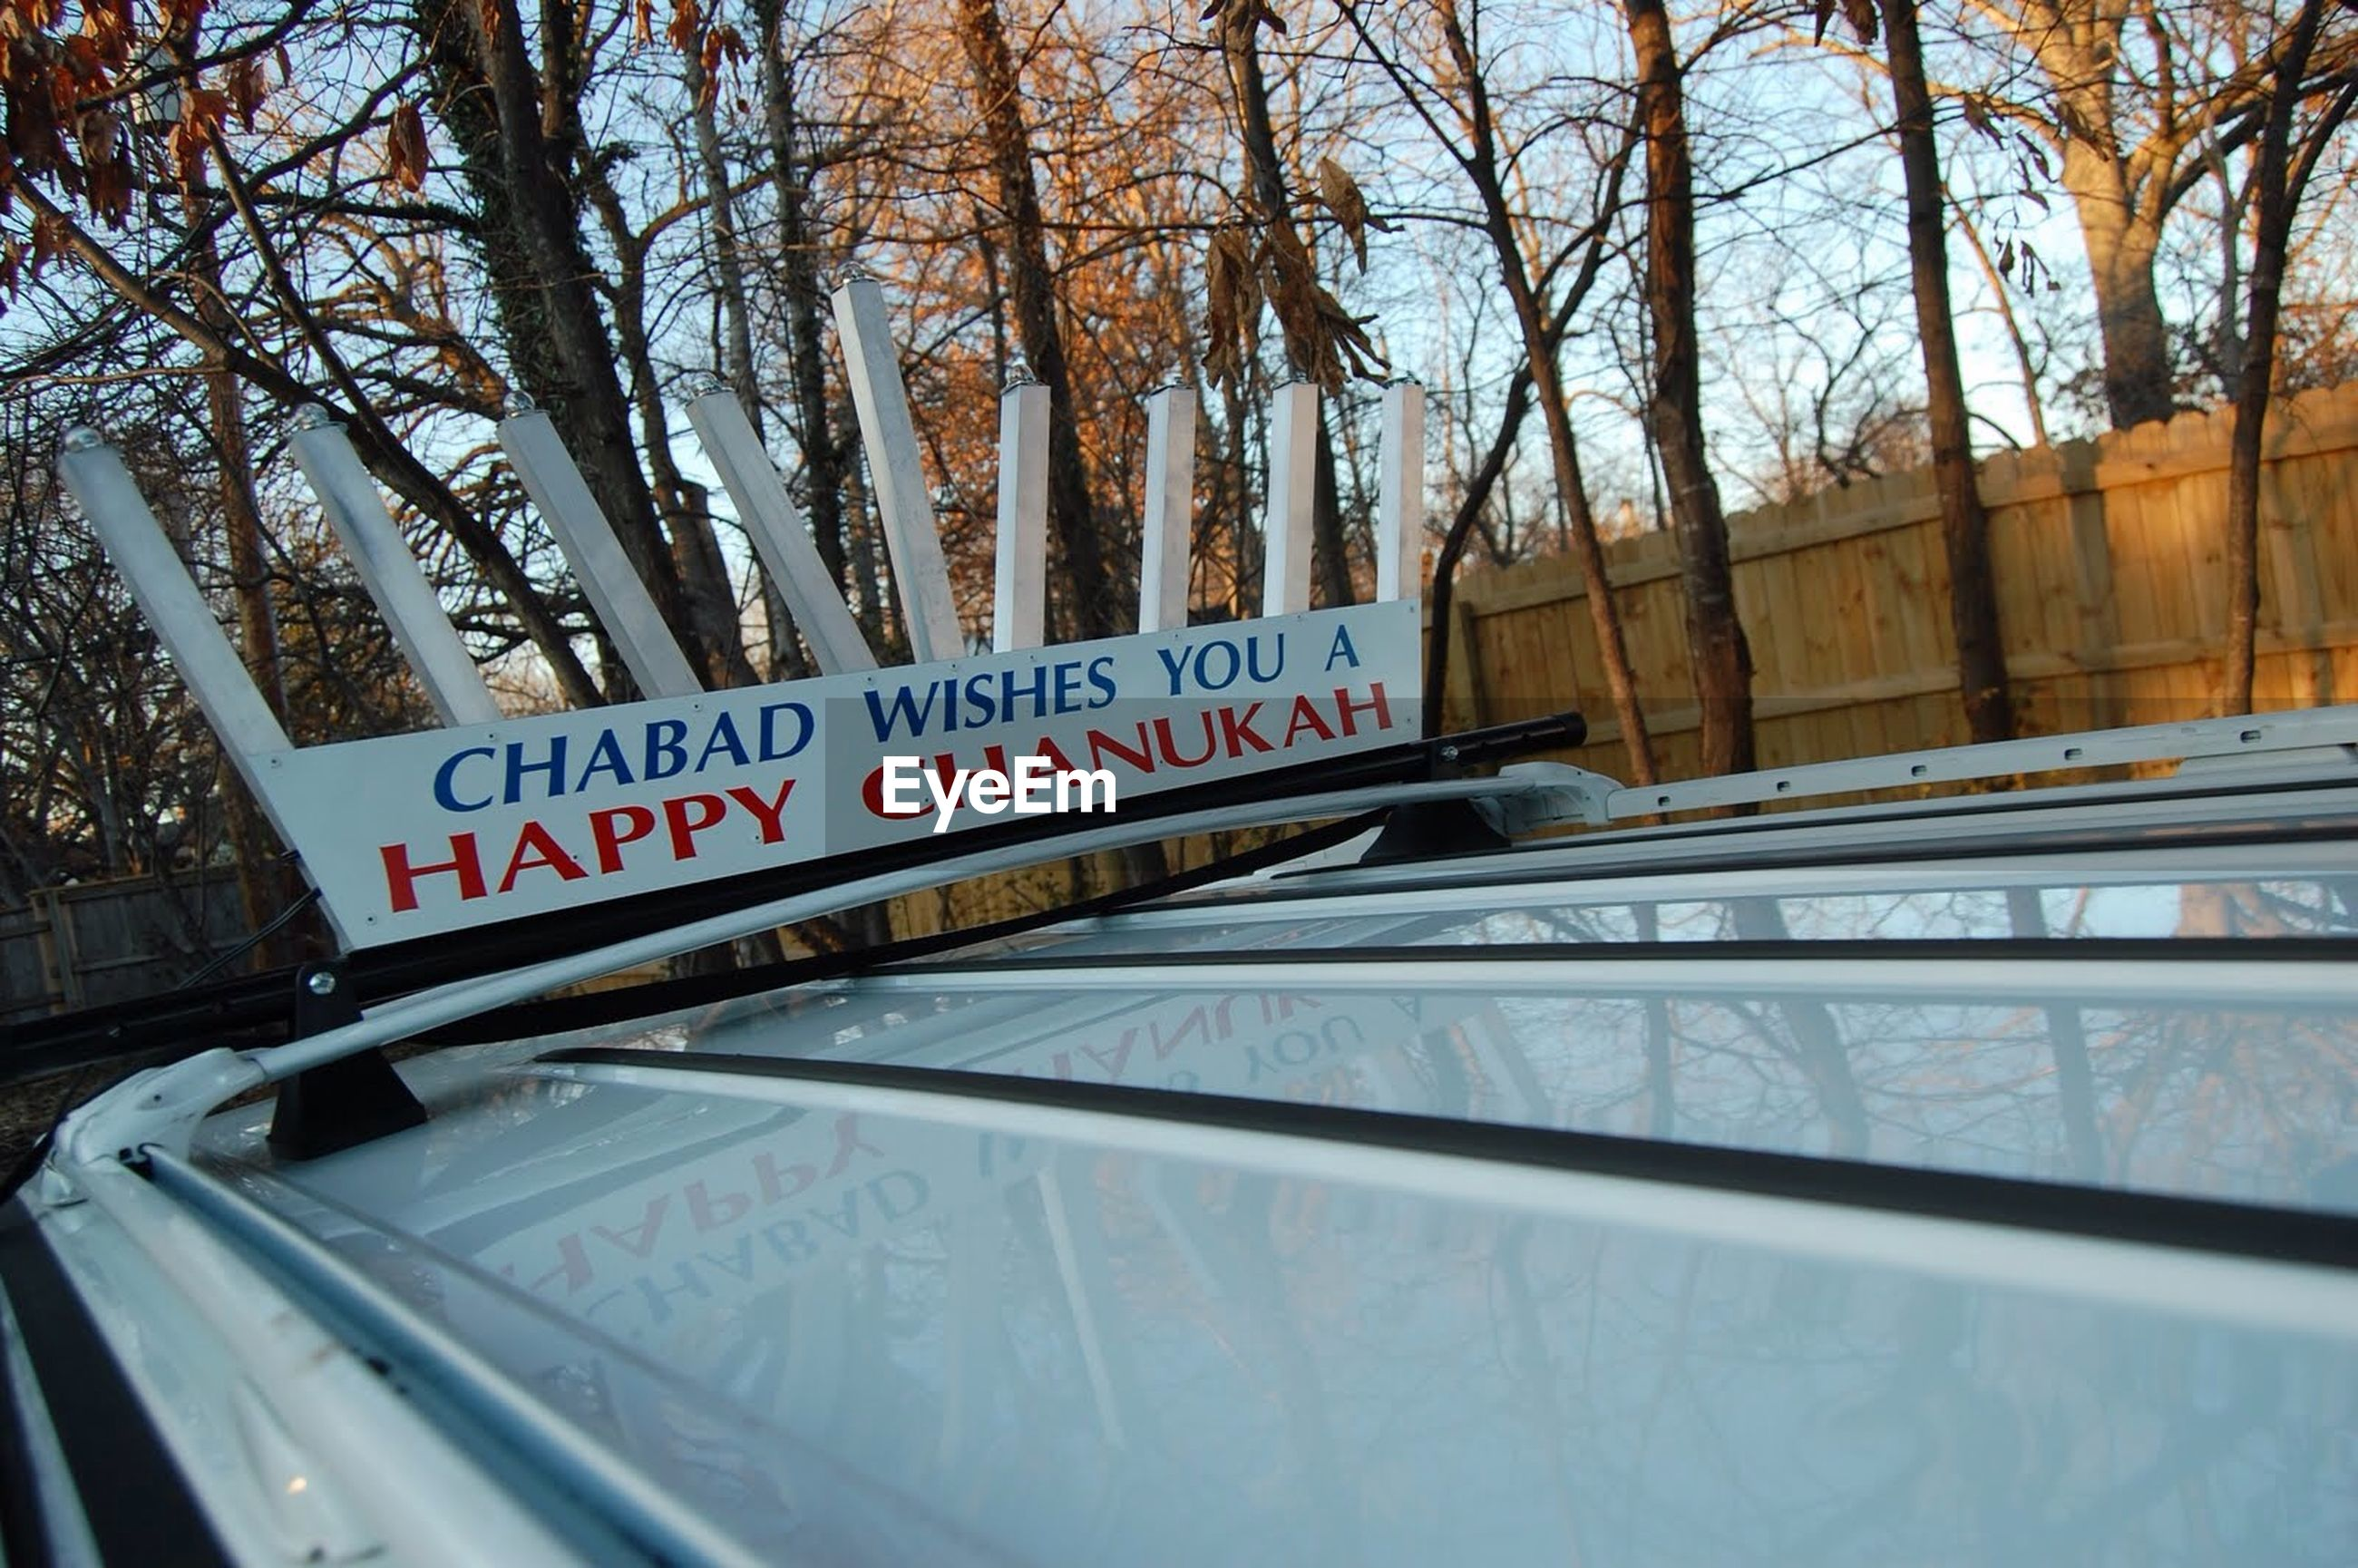 Low angle view of text on car roofrack